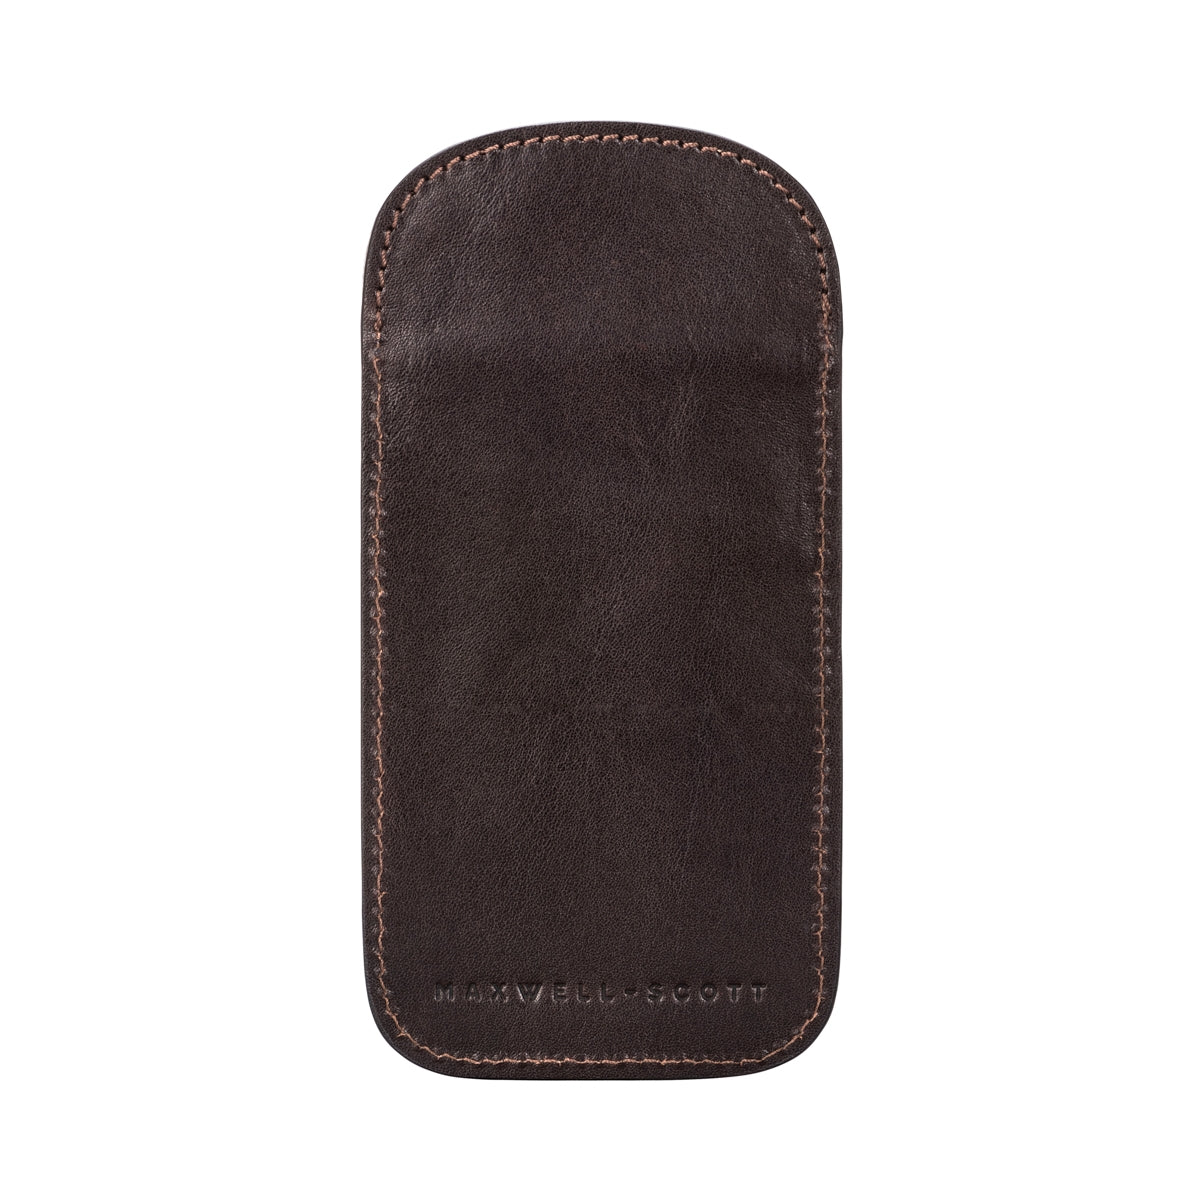 Image 3 of the 'Rufeno' Dark Chocolate Veg-Tanned Leather Glasses Case